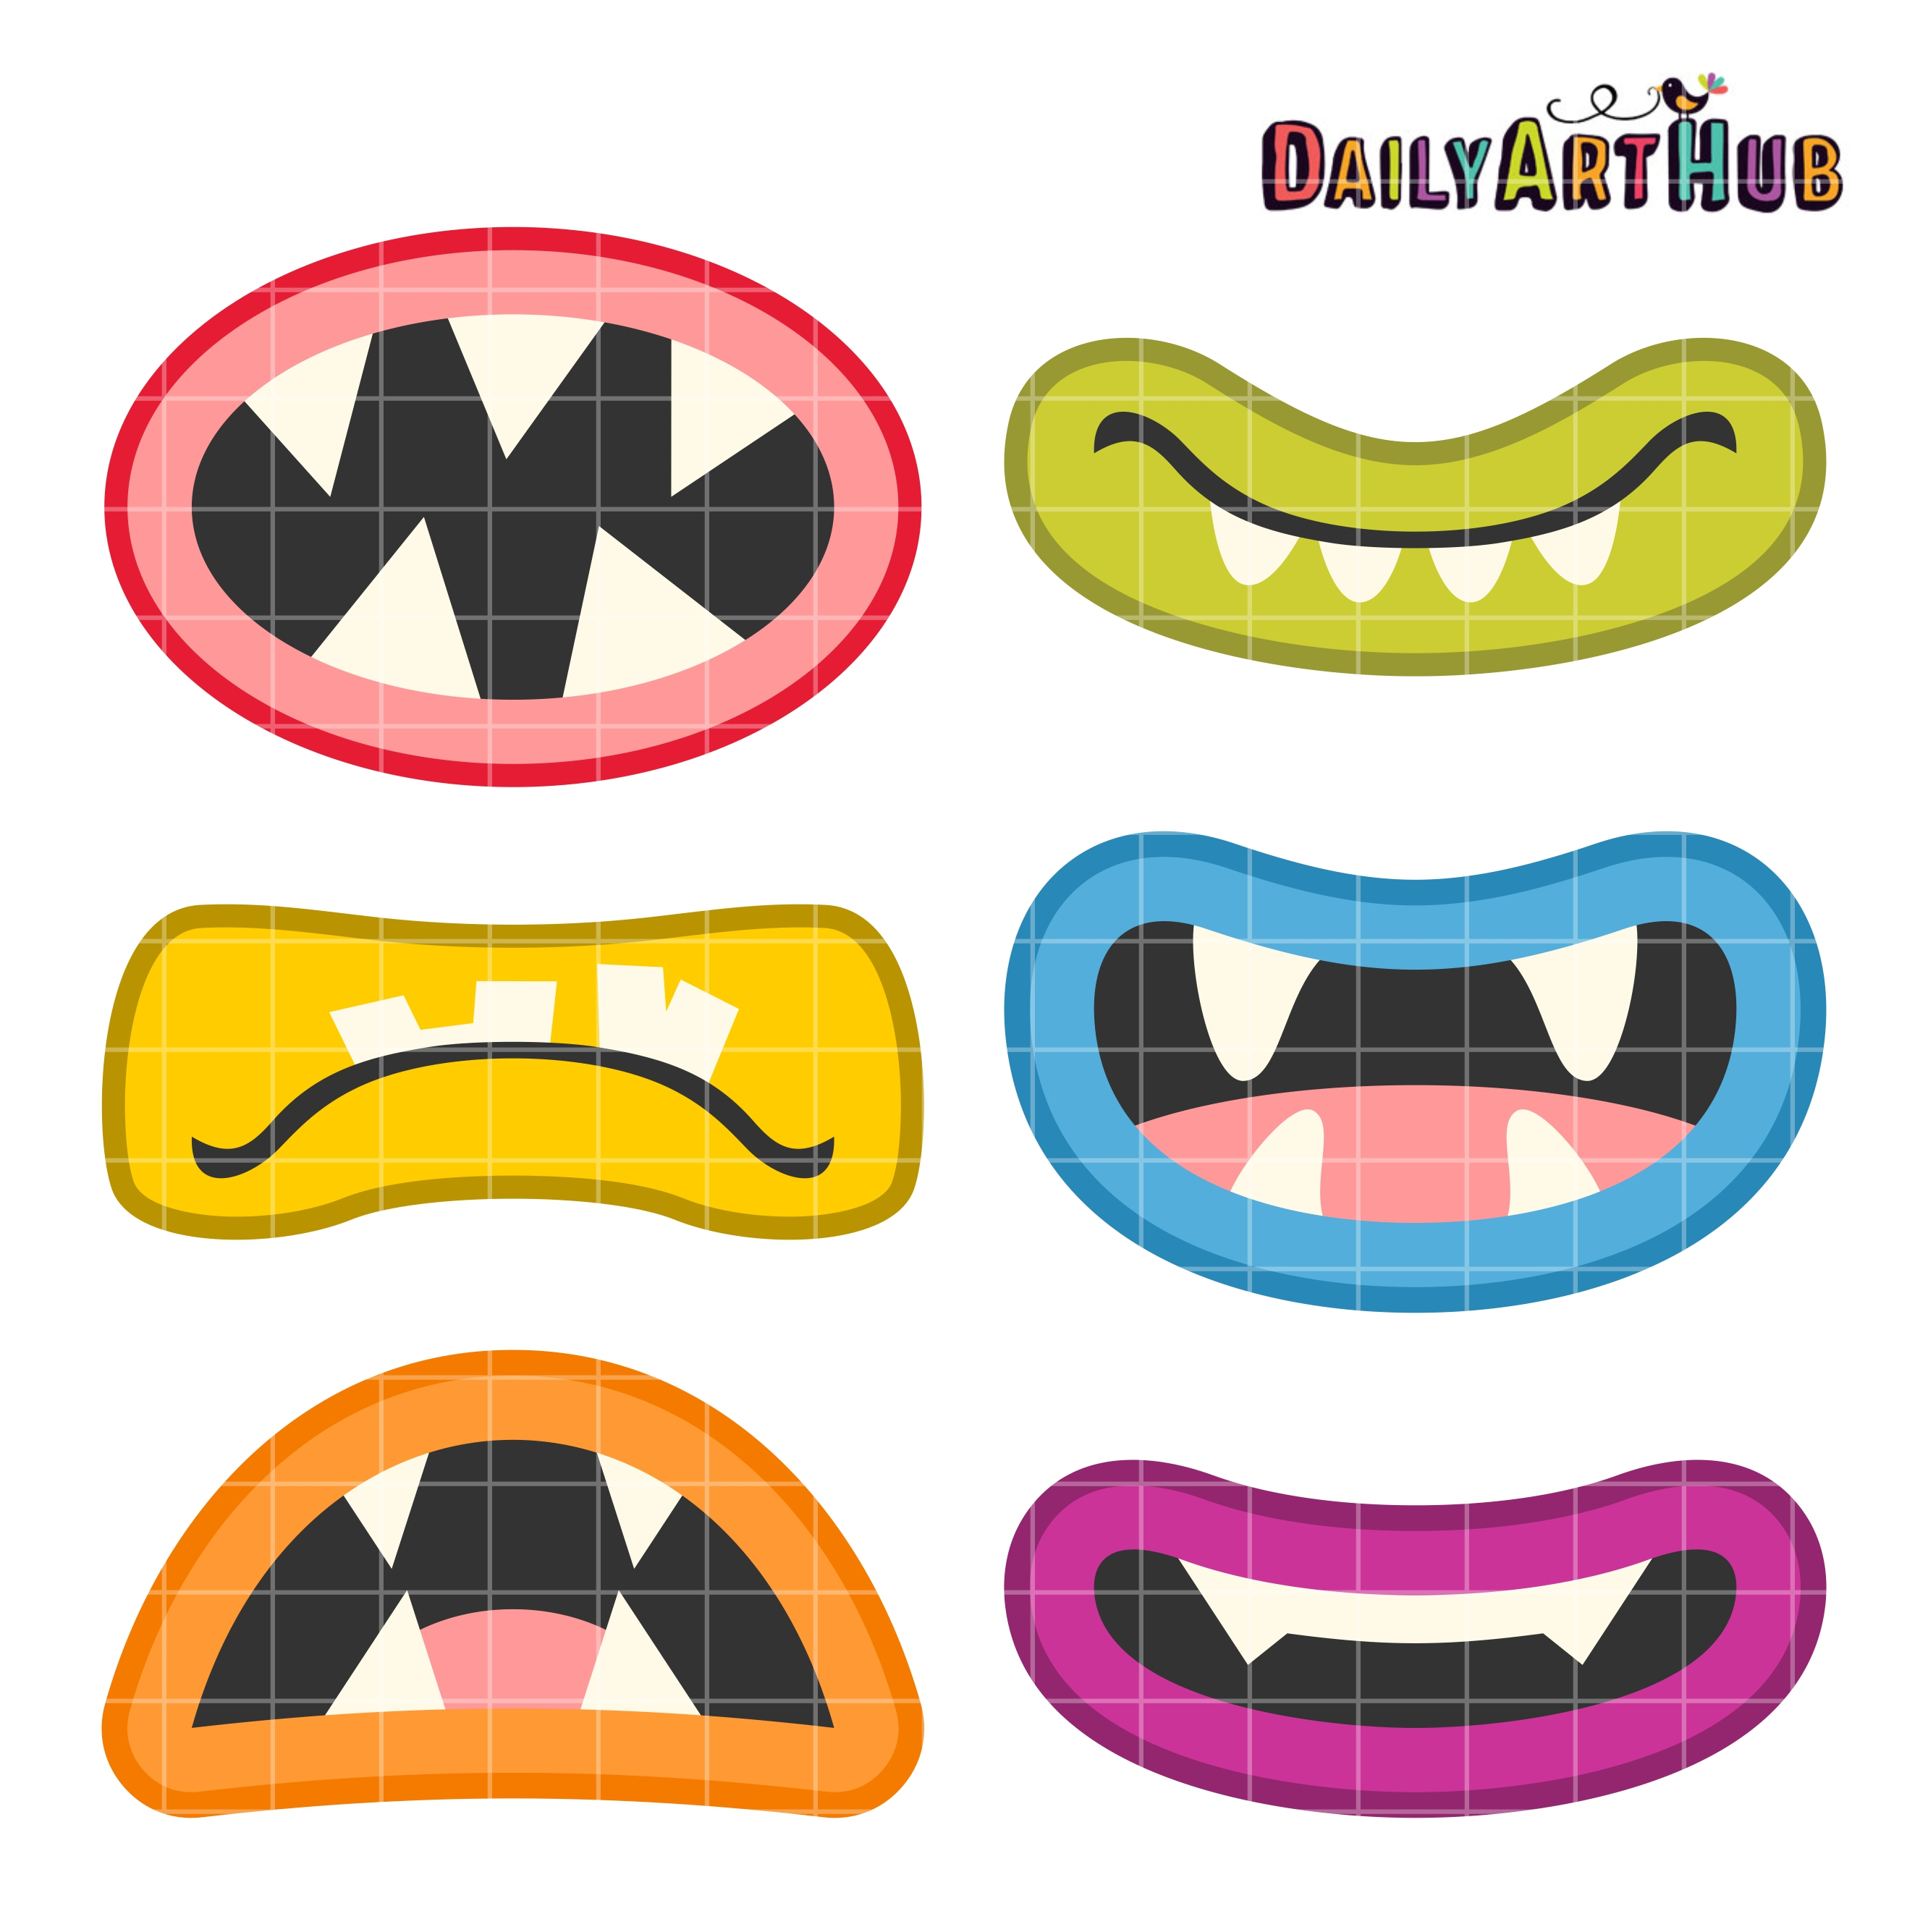 monster mouth clip art set daily art hub free clip art everyday kisses clip art border kisses clip art free images